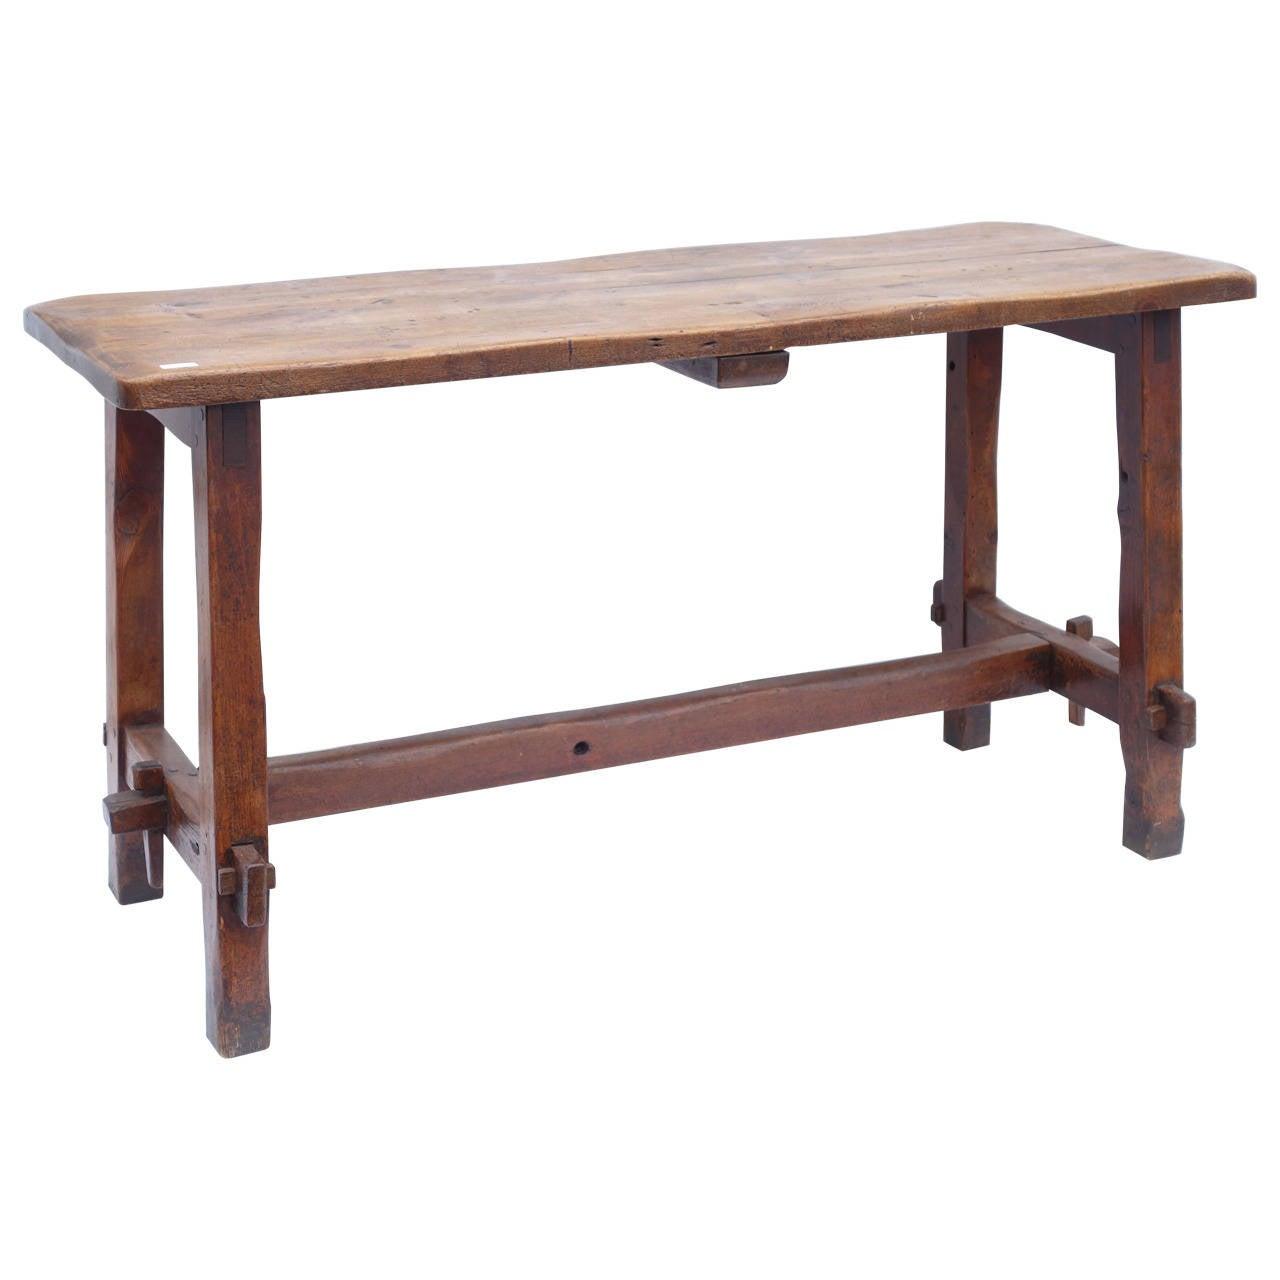 Spanish console table for sale at 1stdibs for Table in spanish